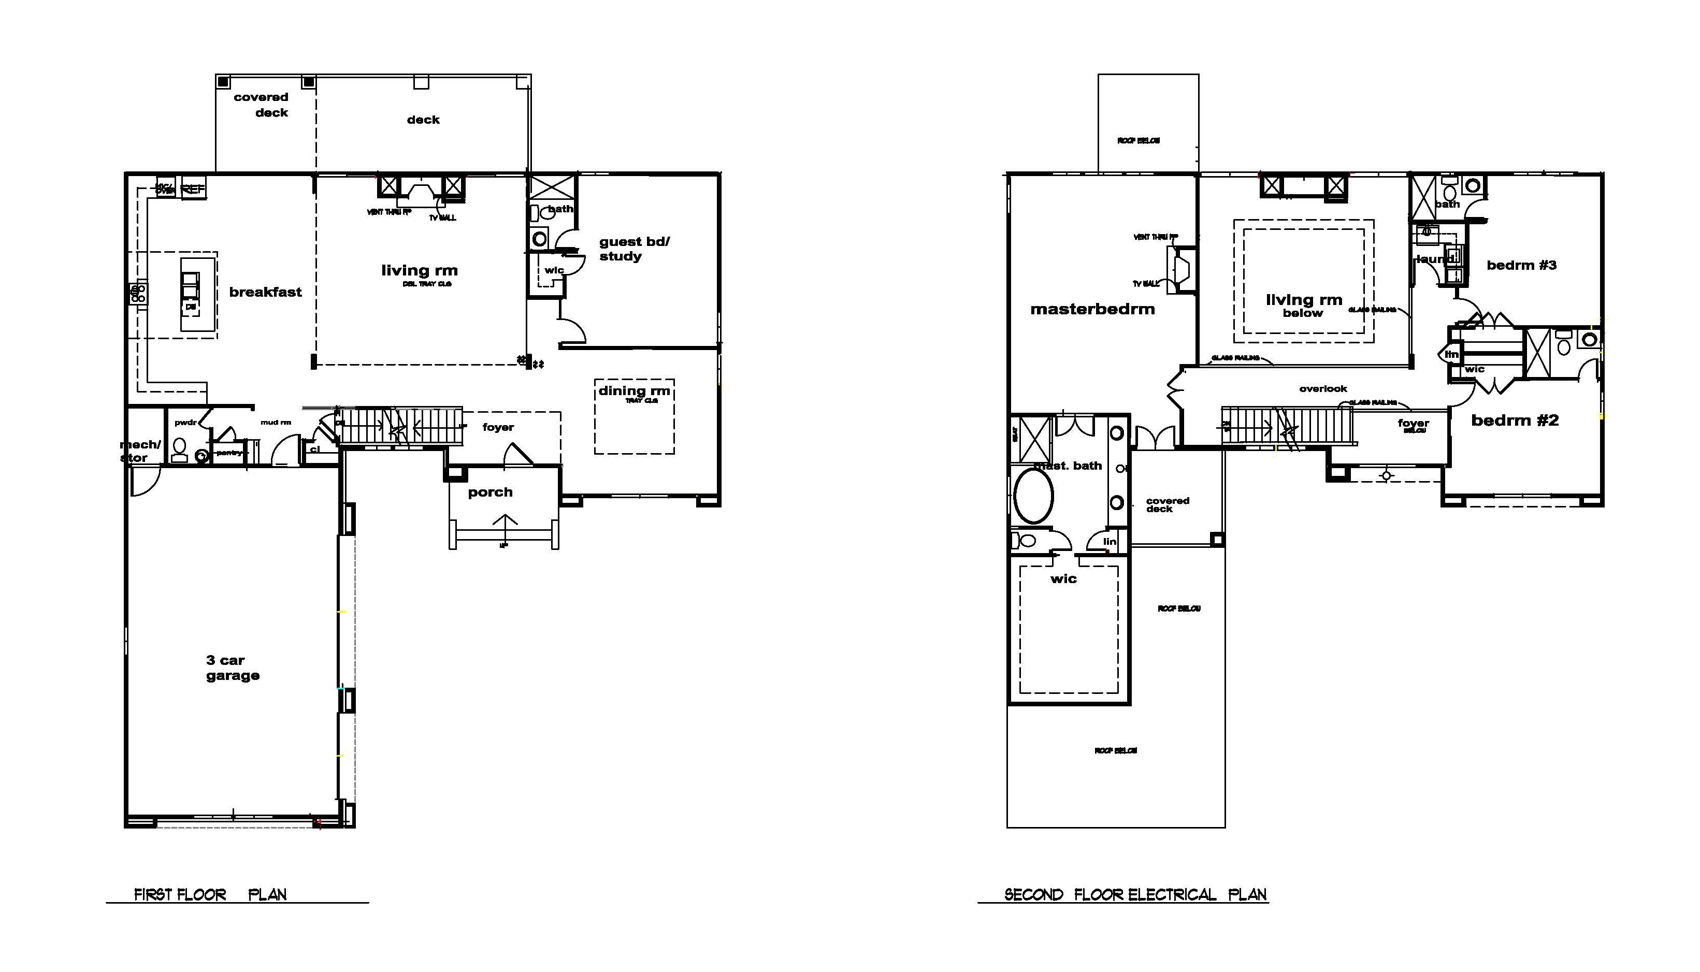 Floor Plan - Upper and Lower